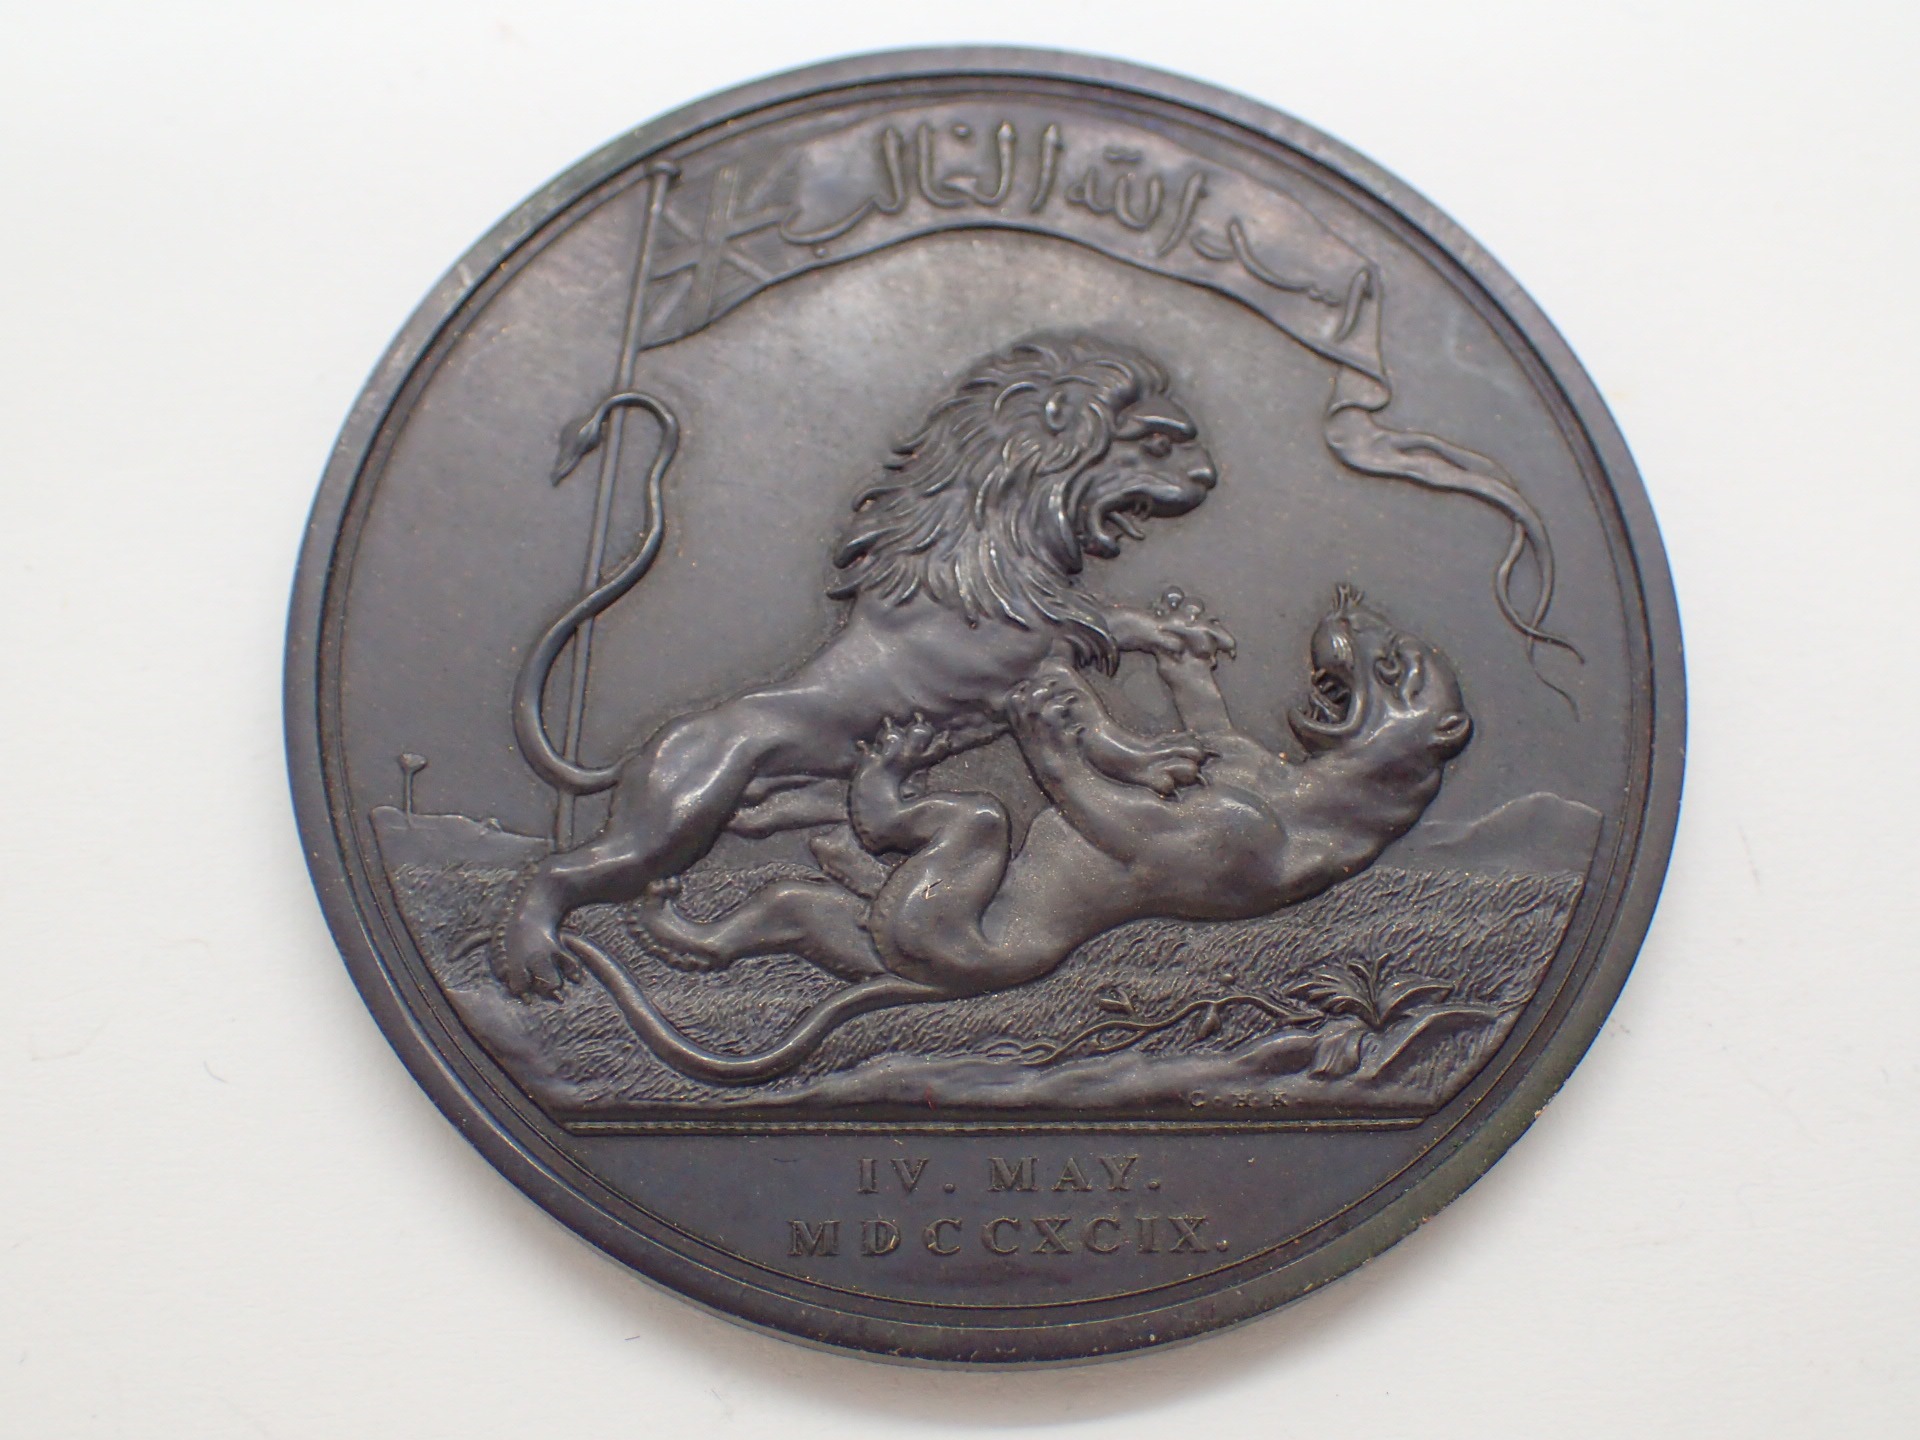 Lot 86 - Seringapatam medal awarded to HEIC force